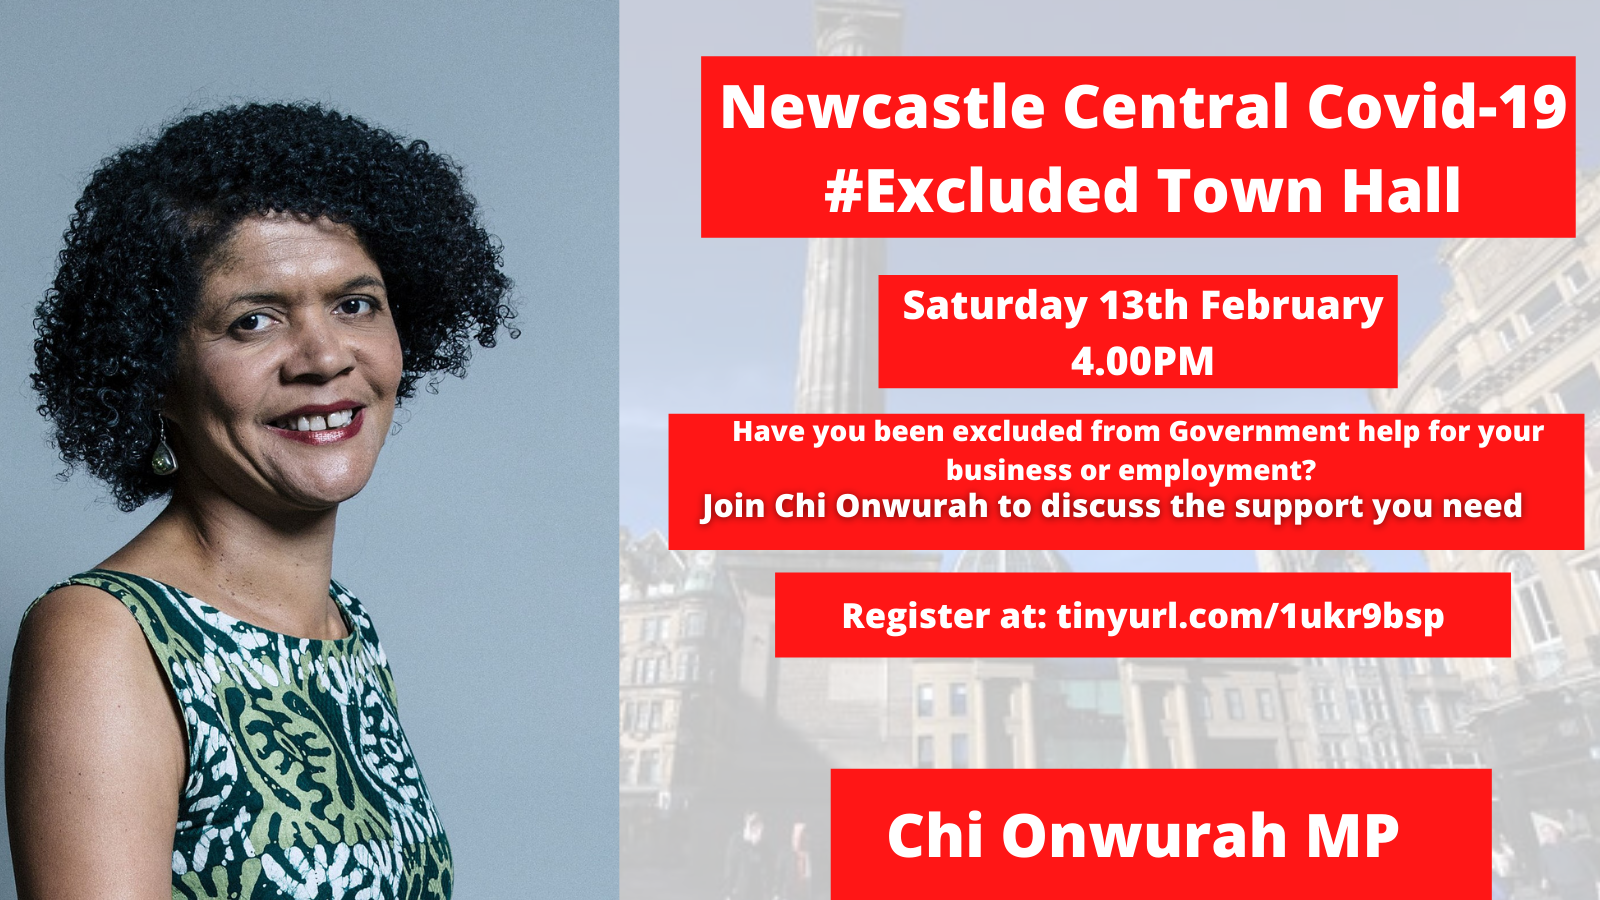 Newcastle Central Covid-19 #Excluded Town Hall